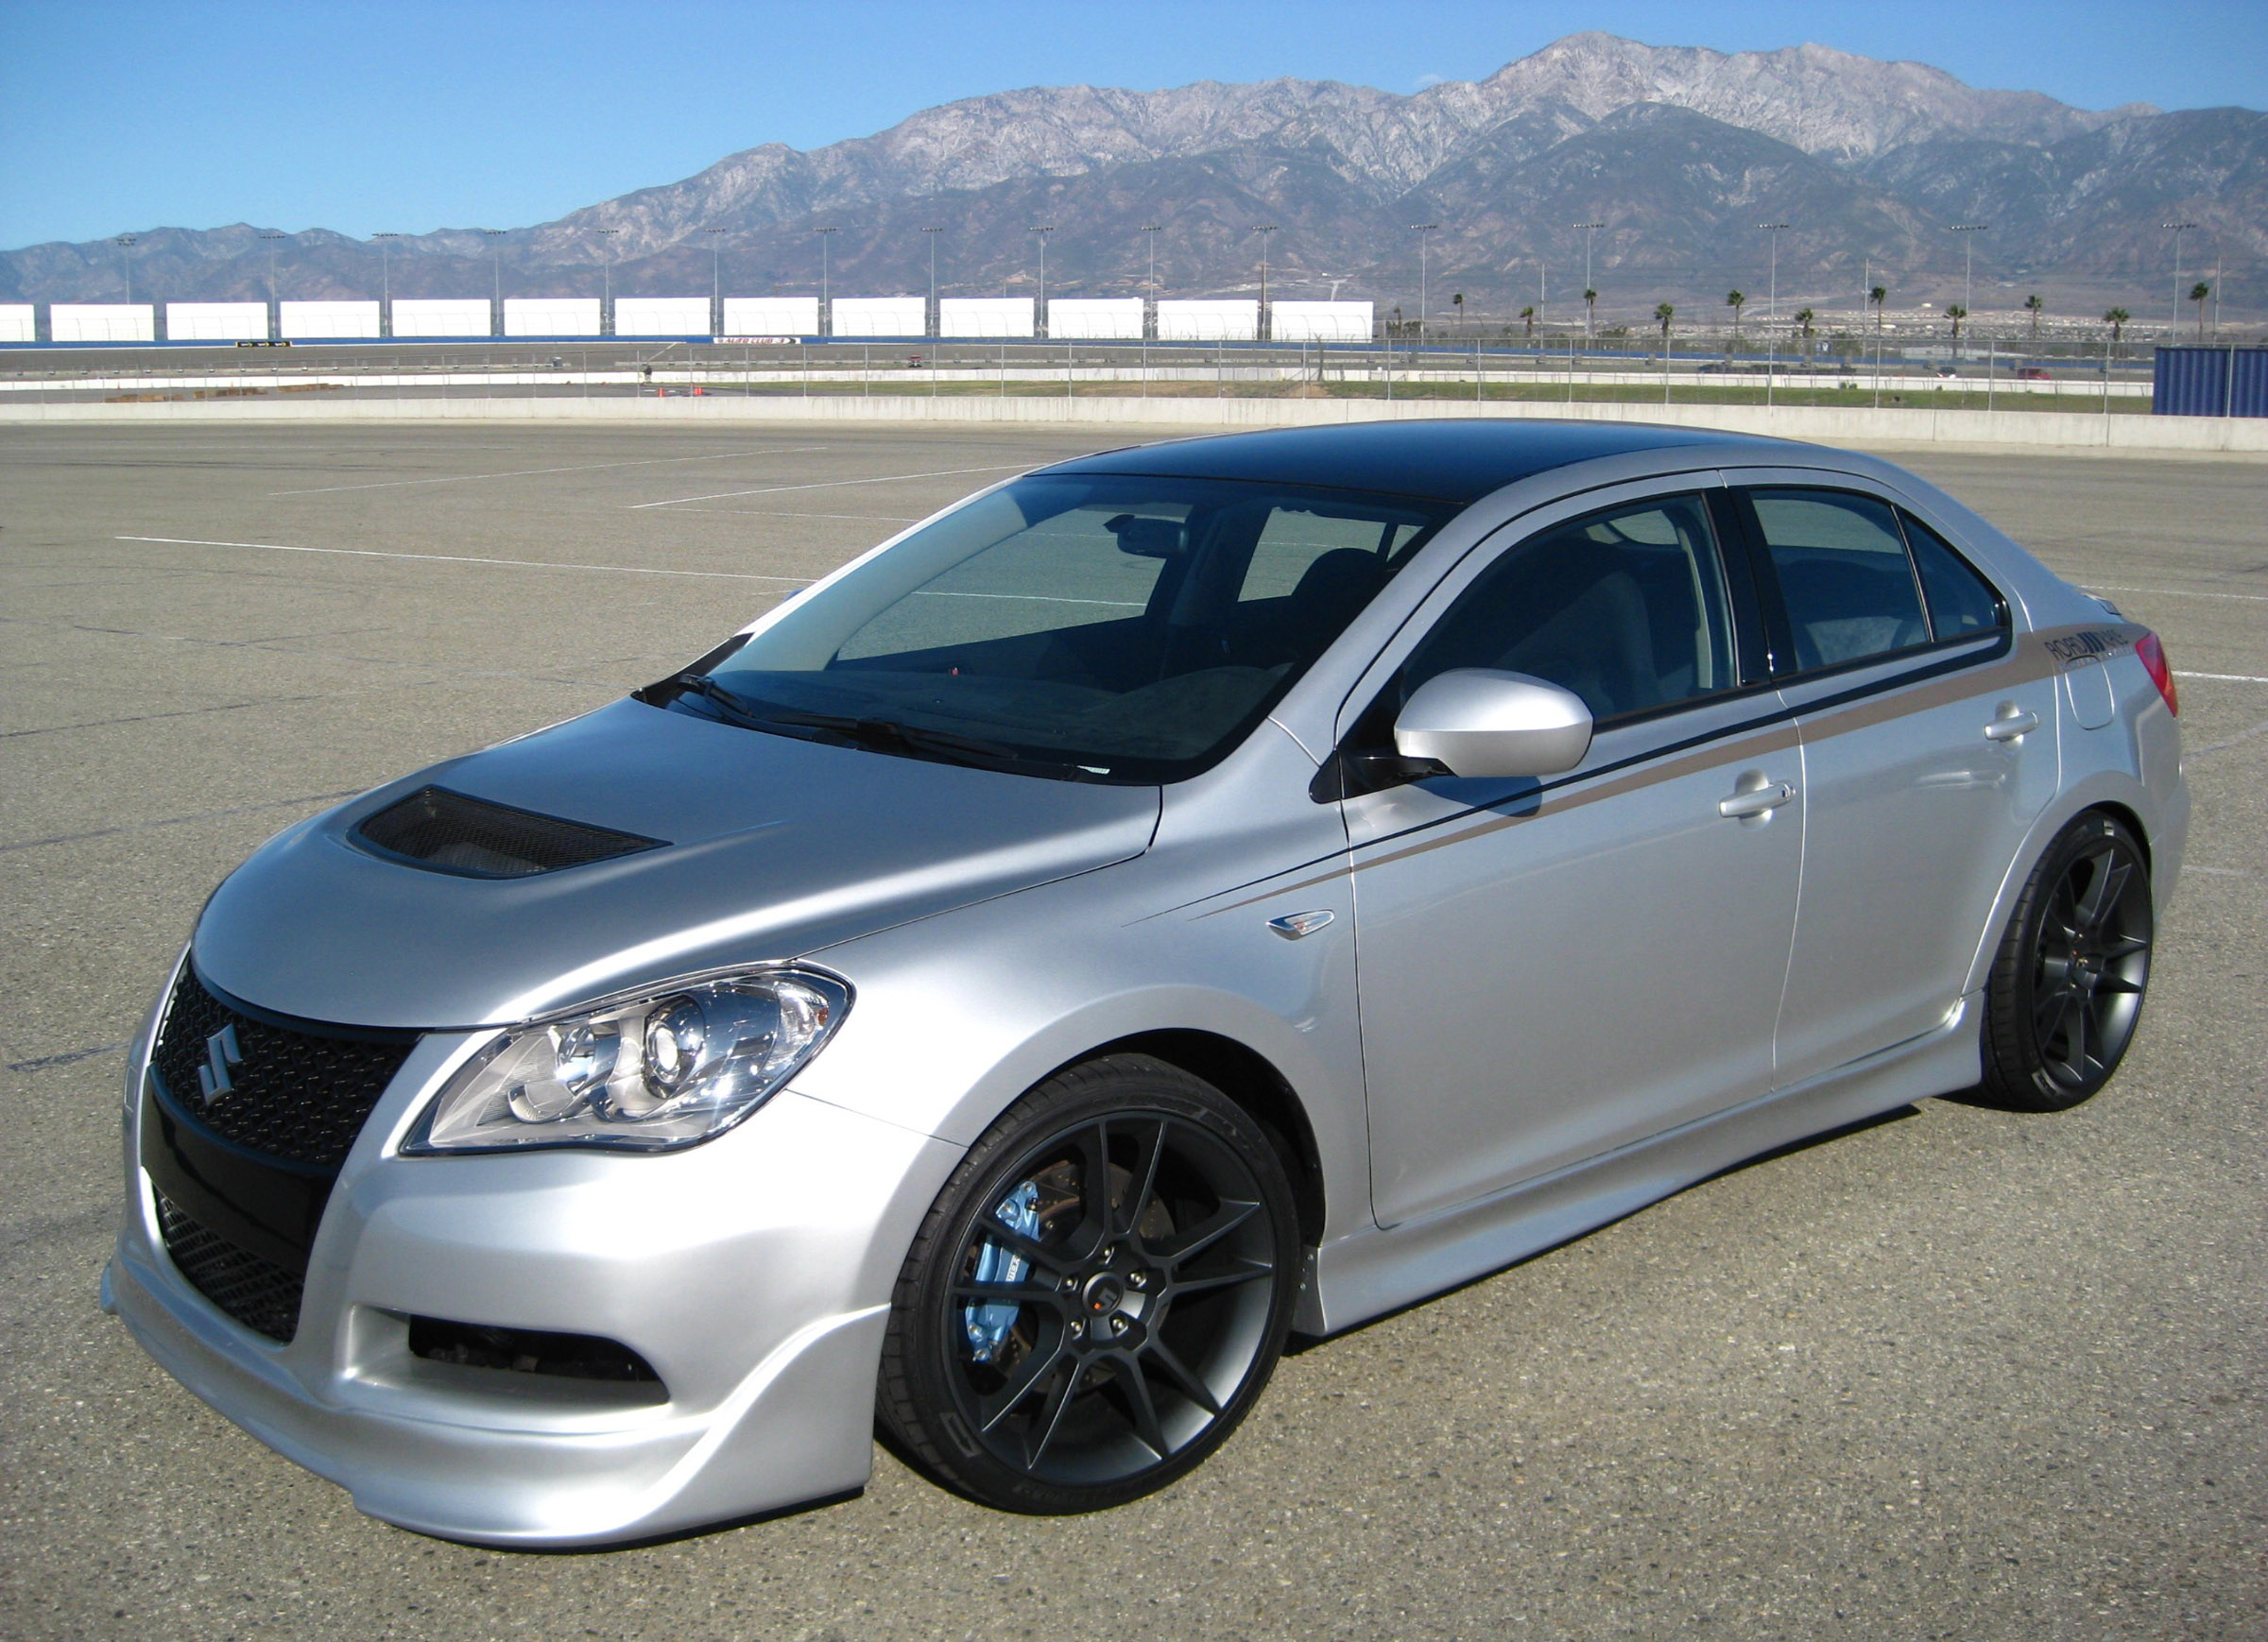 Platinum edition suzuki kizashi by road race motorsport for Gm motor club roadside assistance